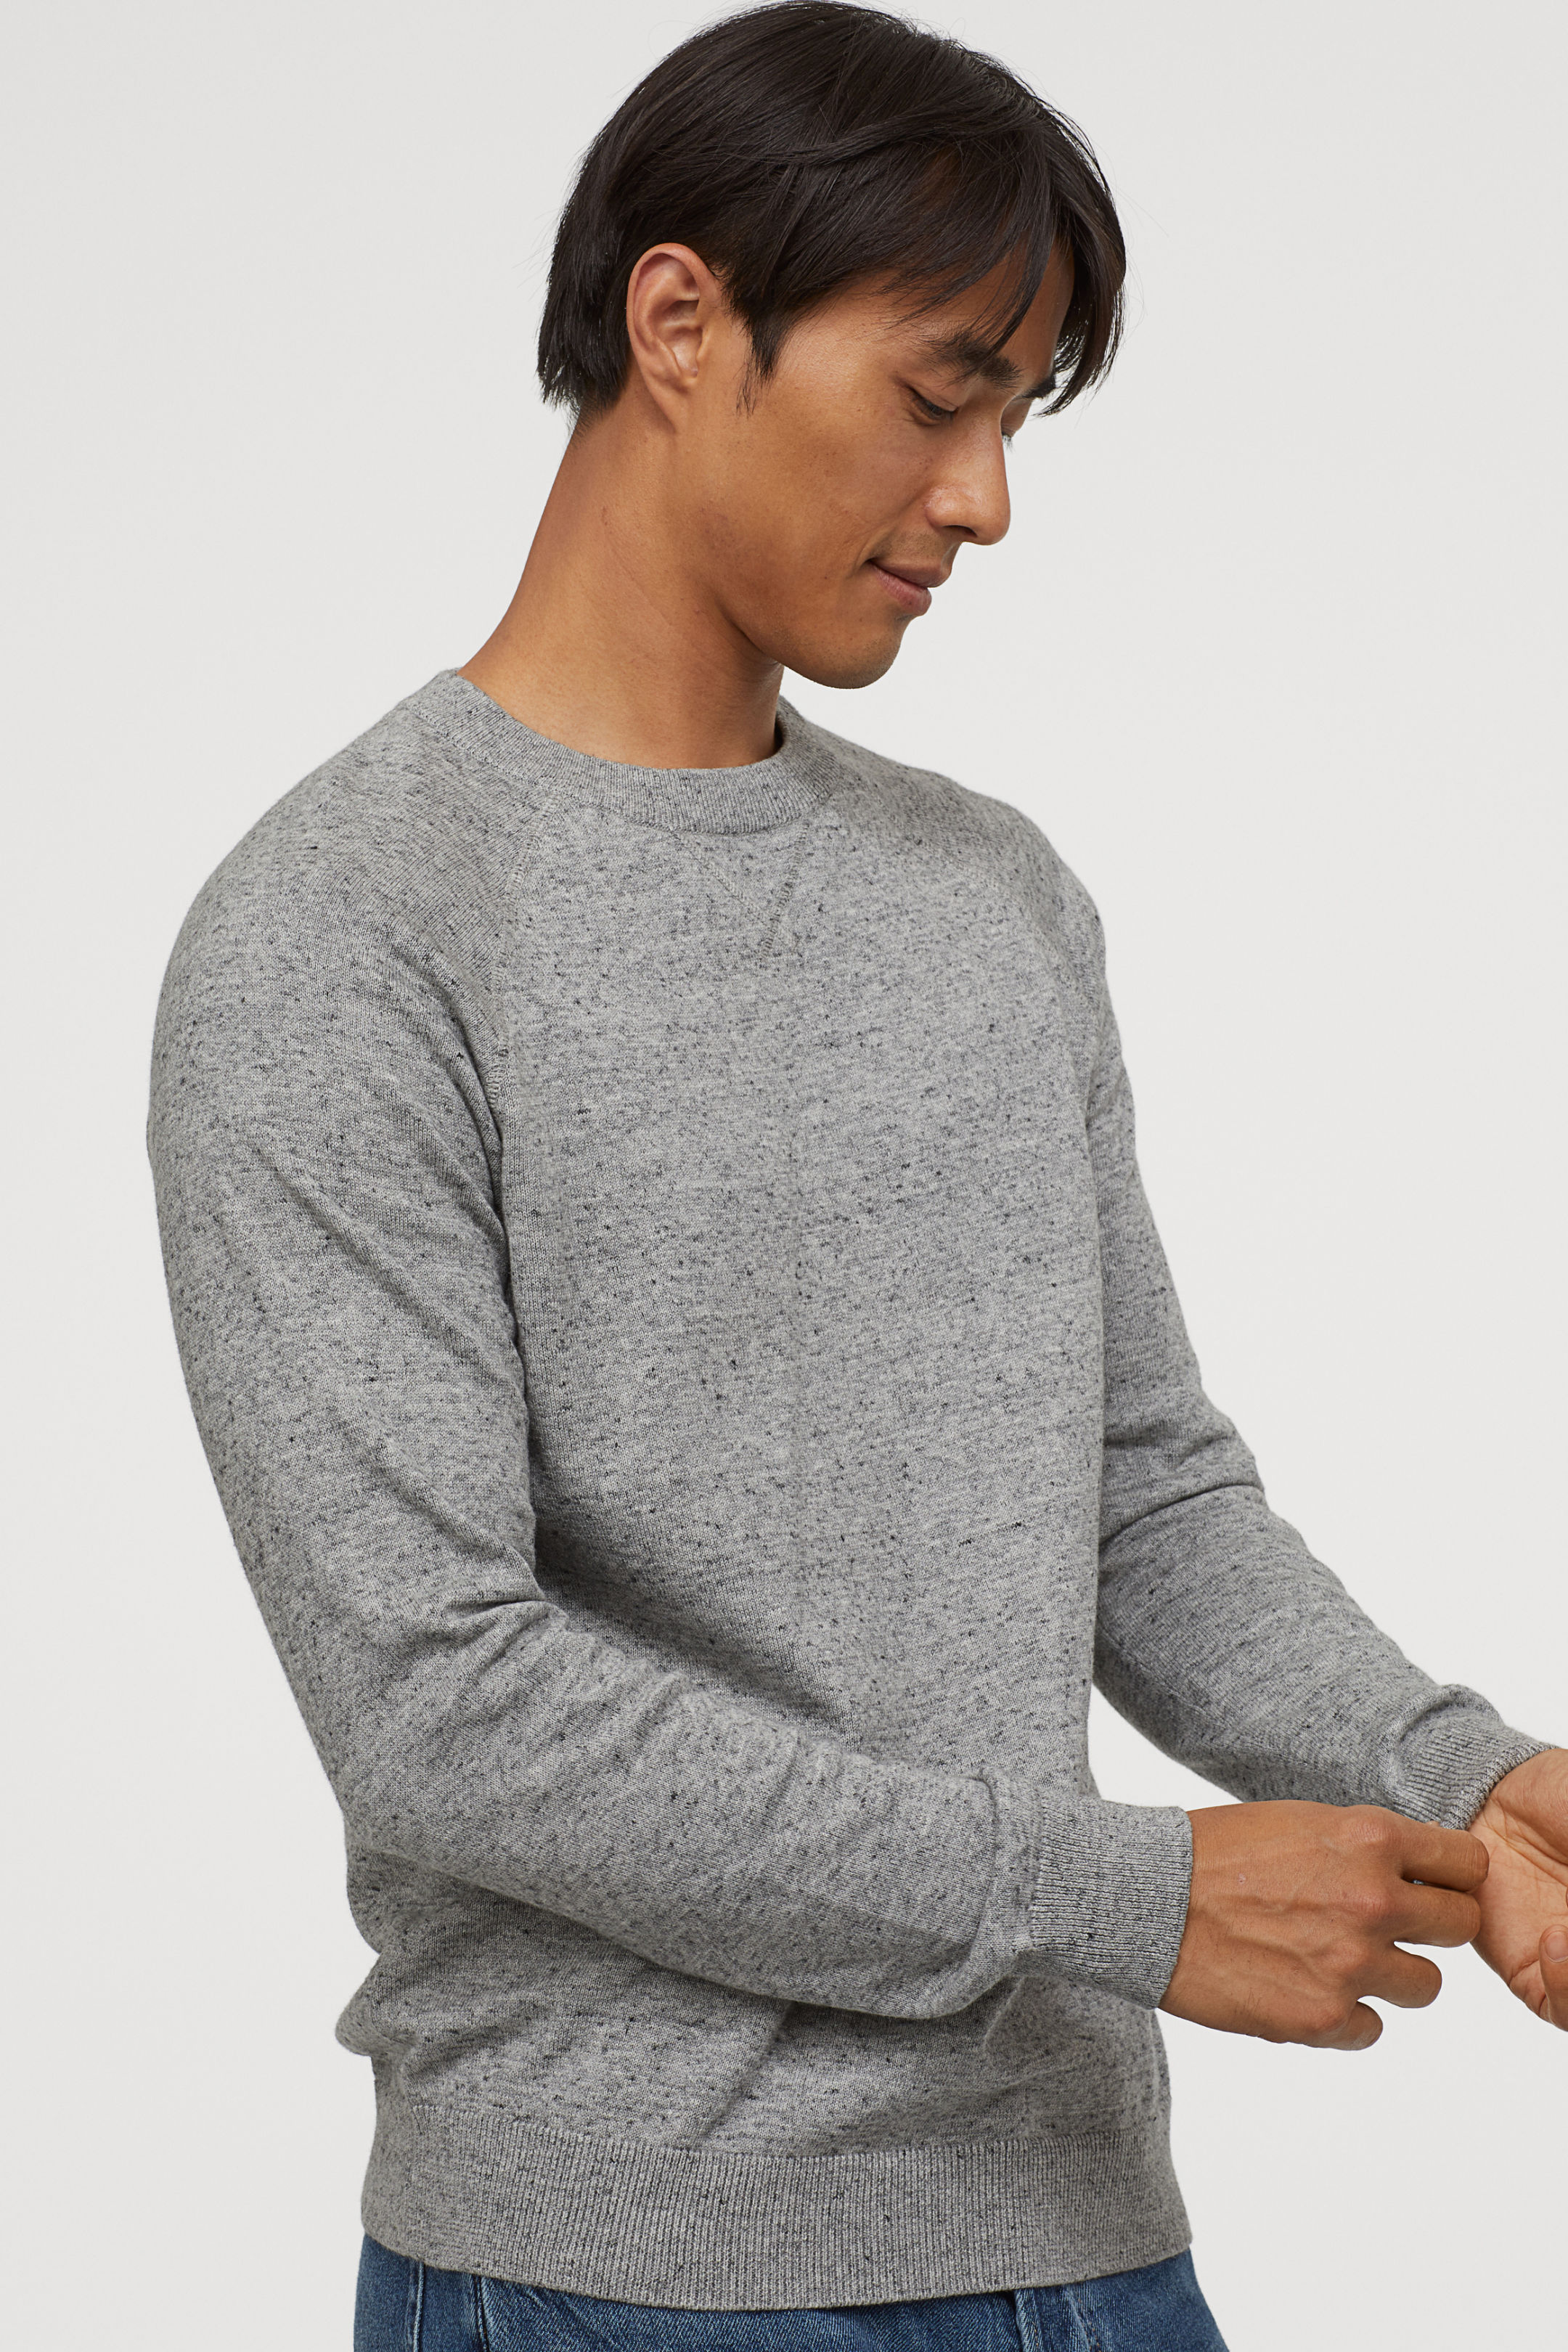 Reglan Sleeve Cotton Sweater